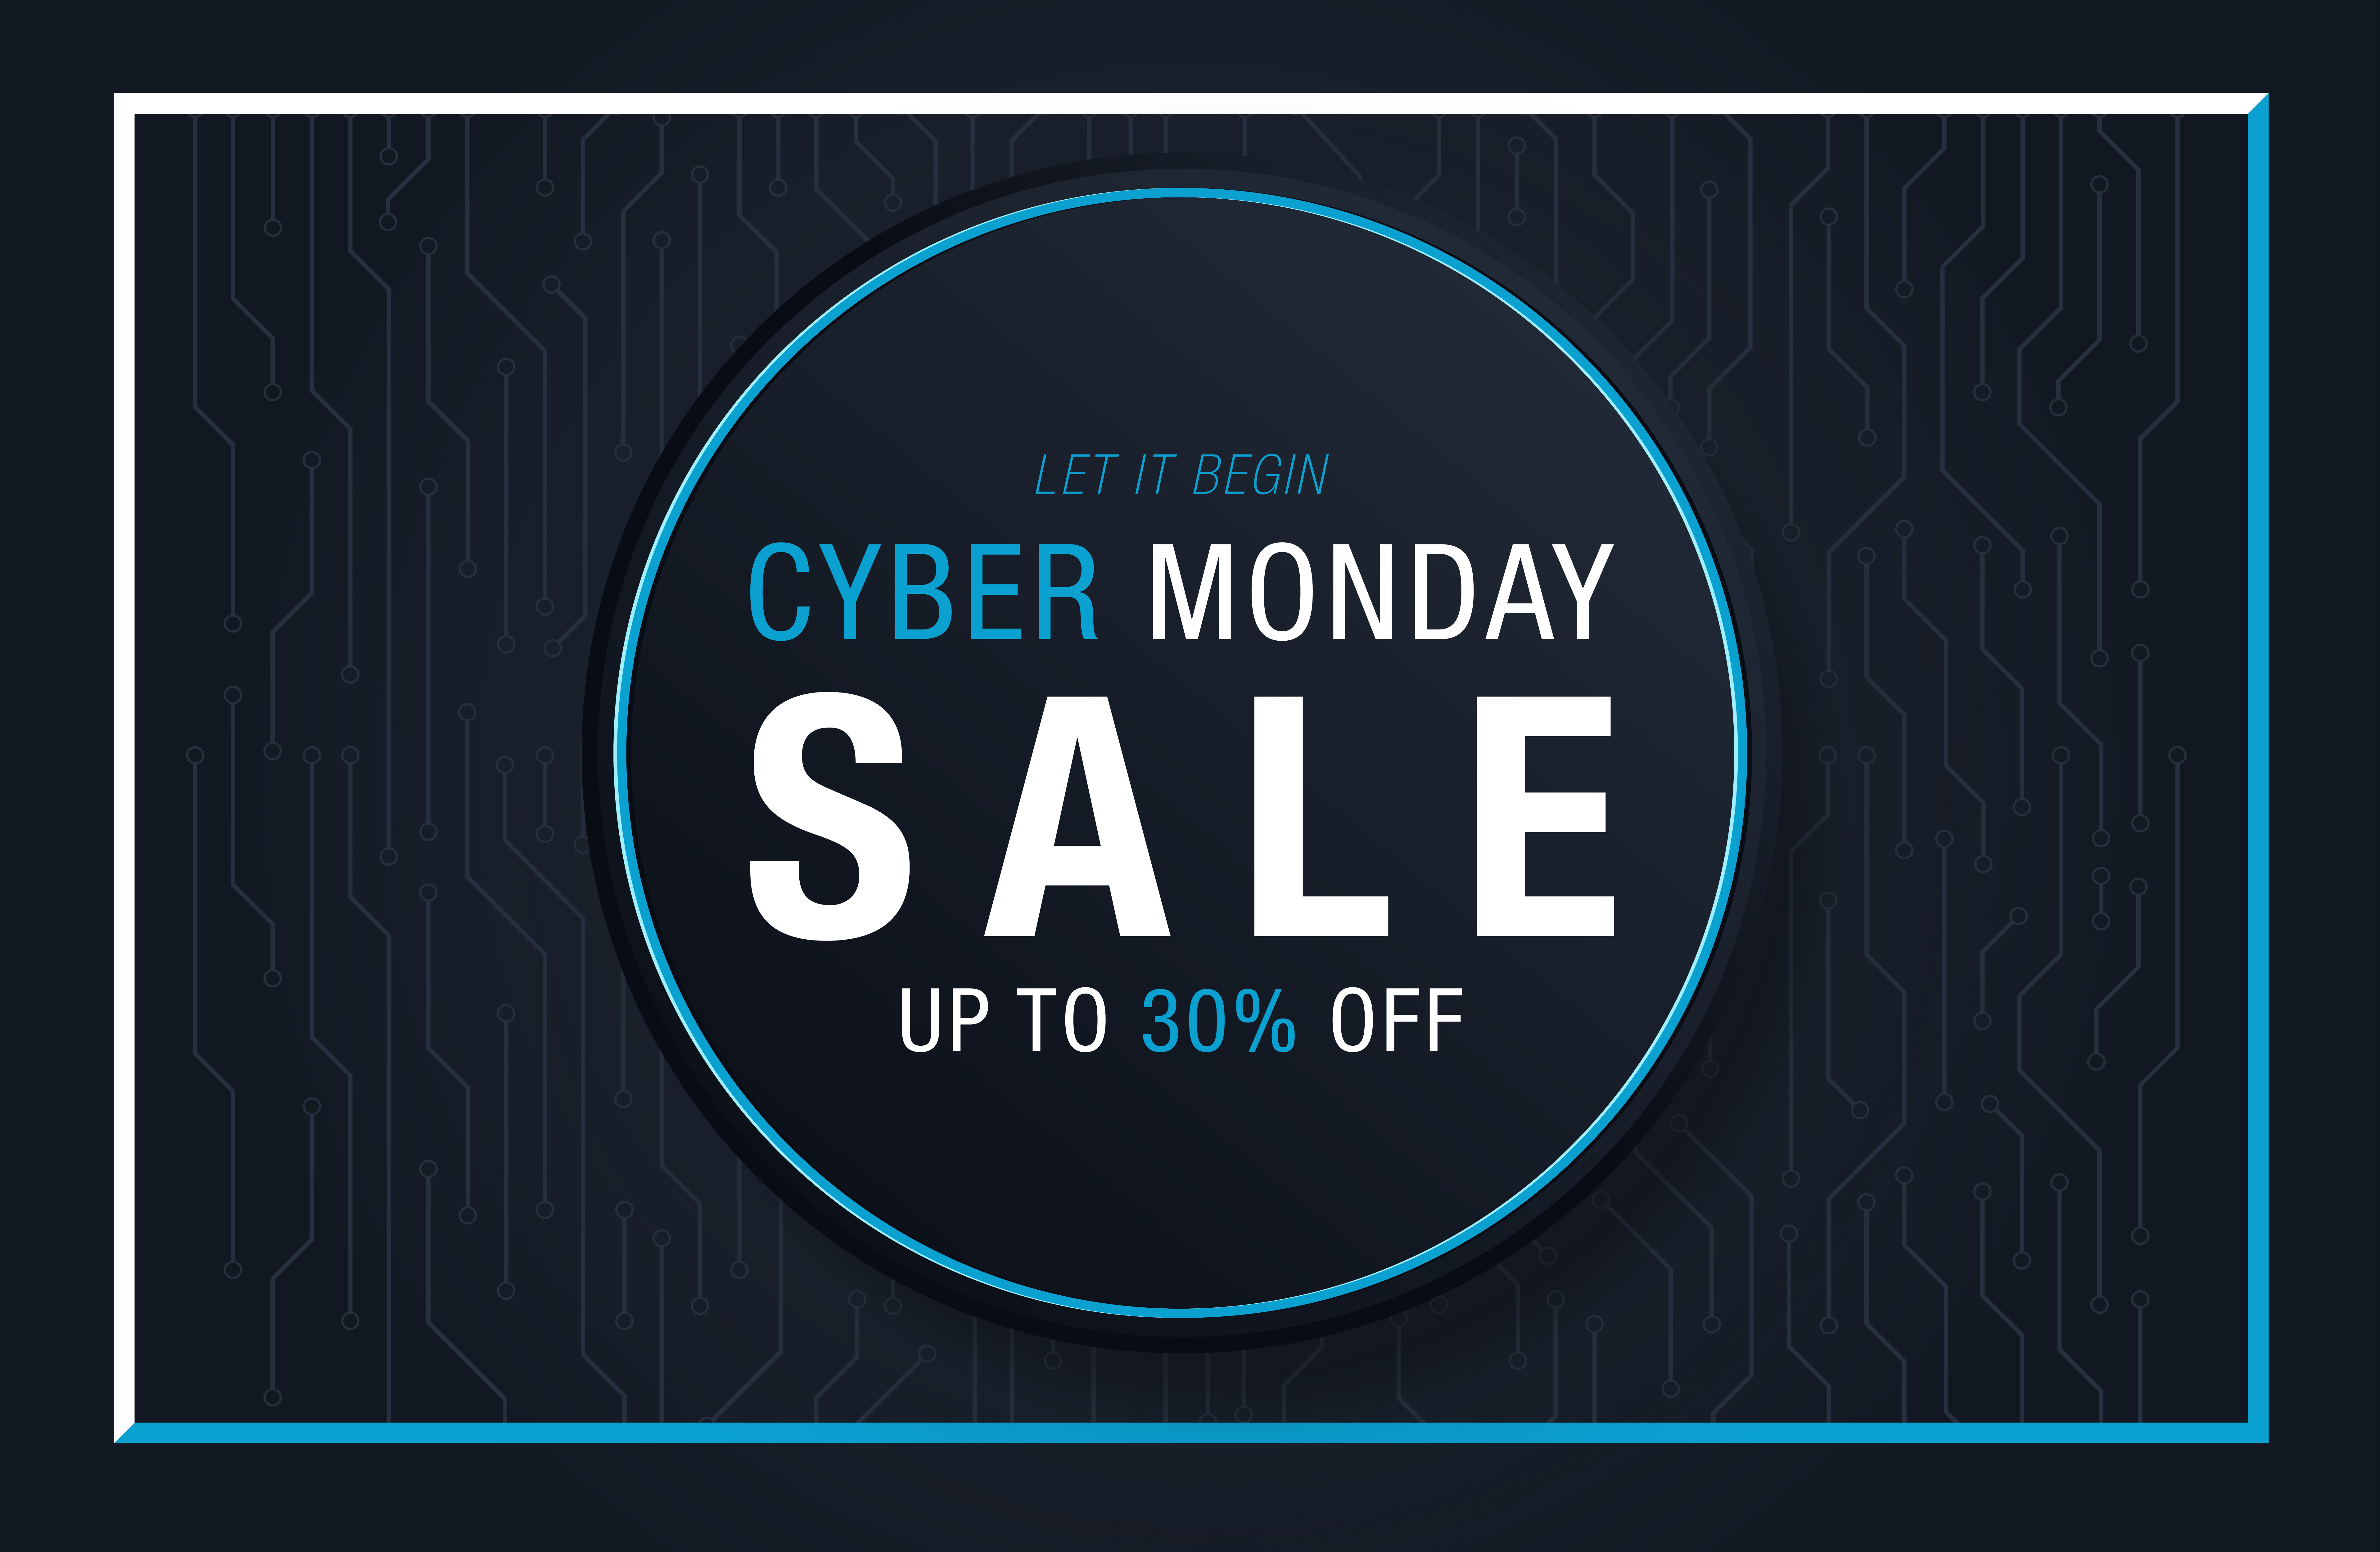 Cyber Monday Background For Good Deal Promotion Graphic By Inkwell Creative Fabrica